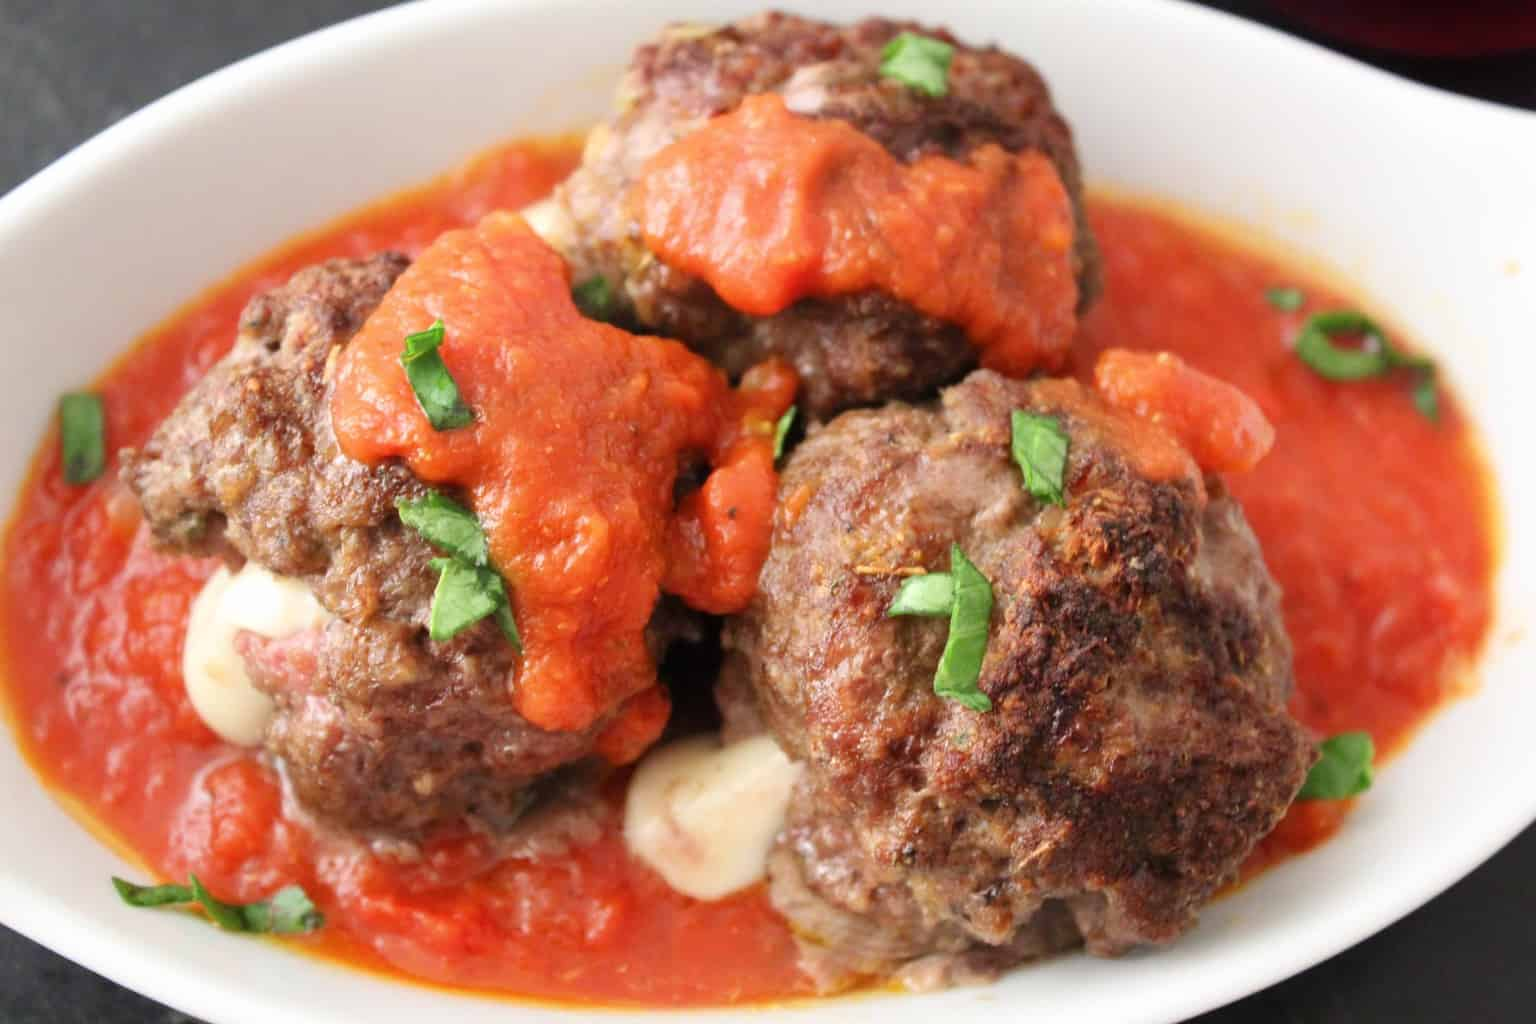 Three Mozzarella stuffed meatballs in red sauce, topped with fresh bail